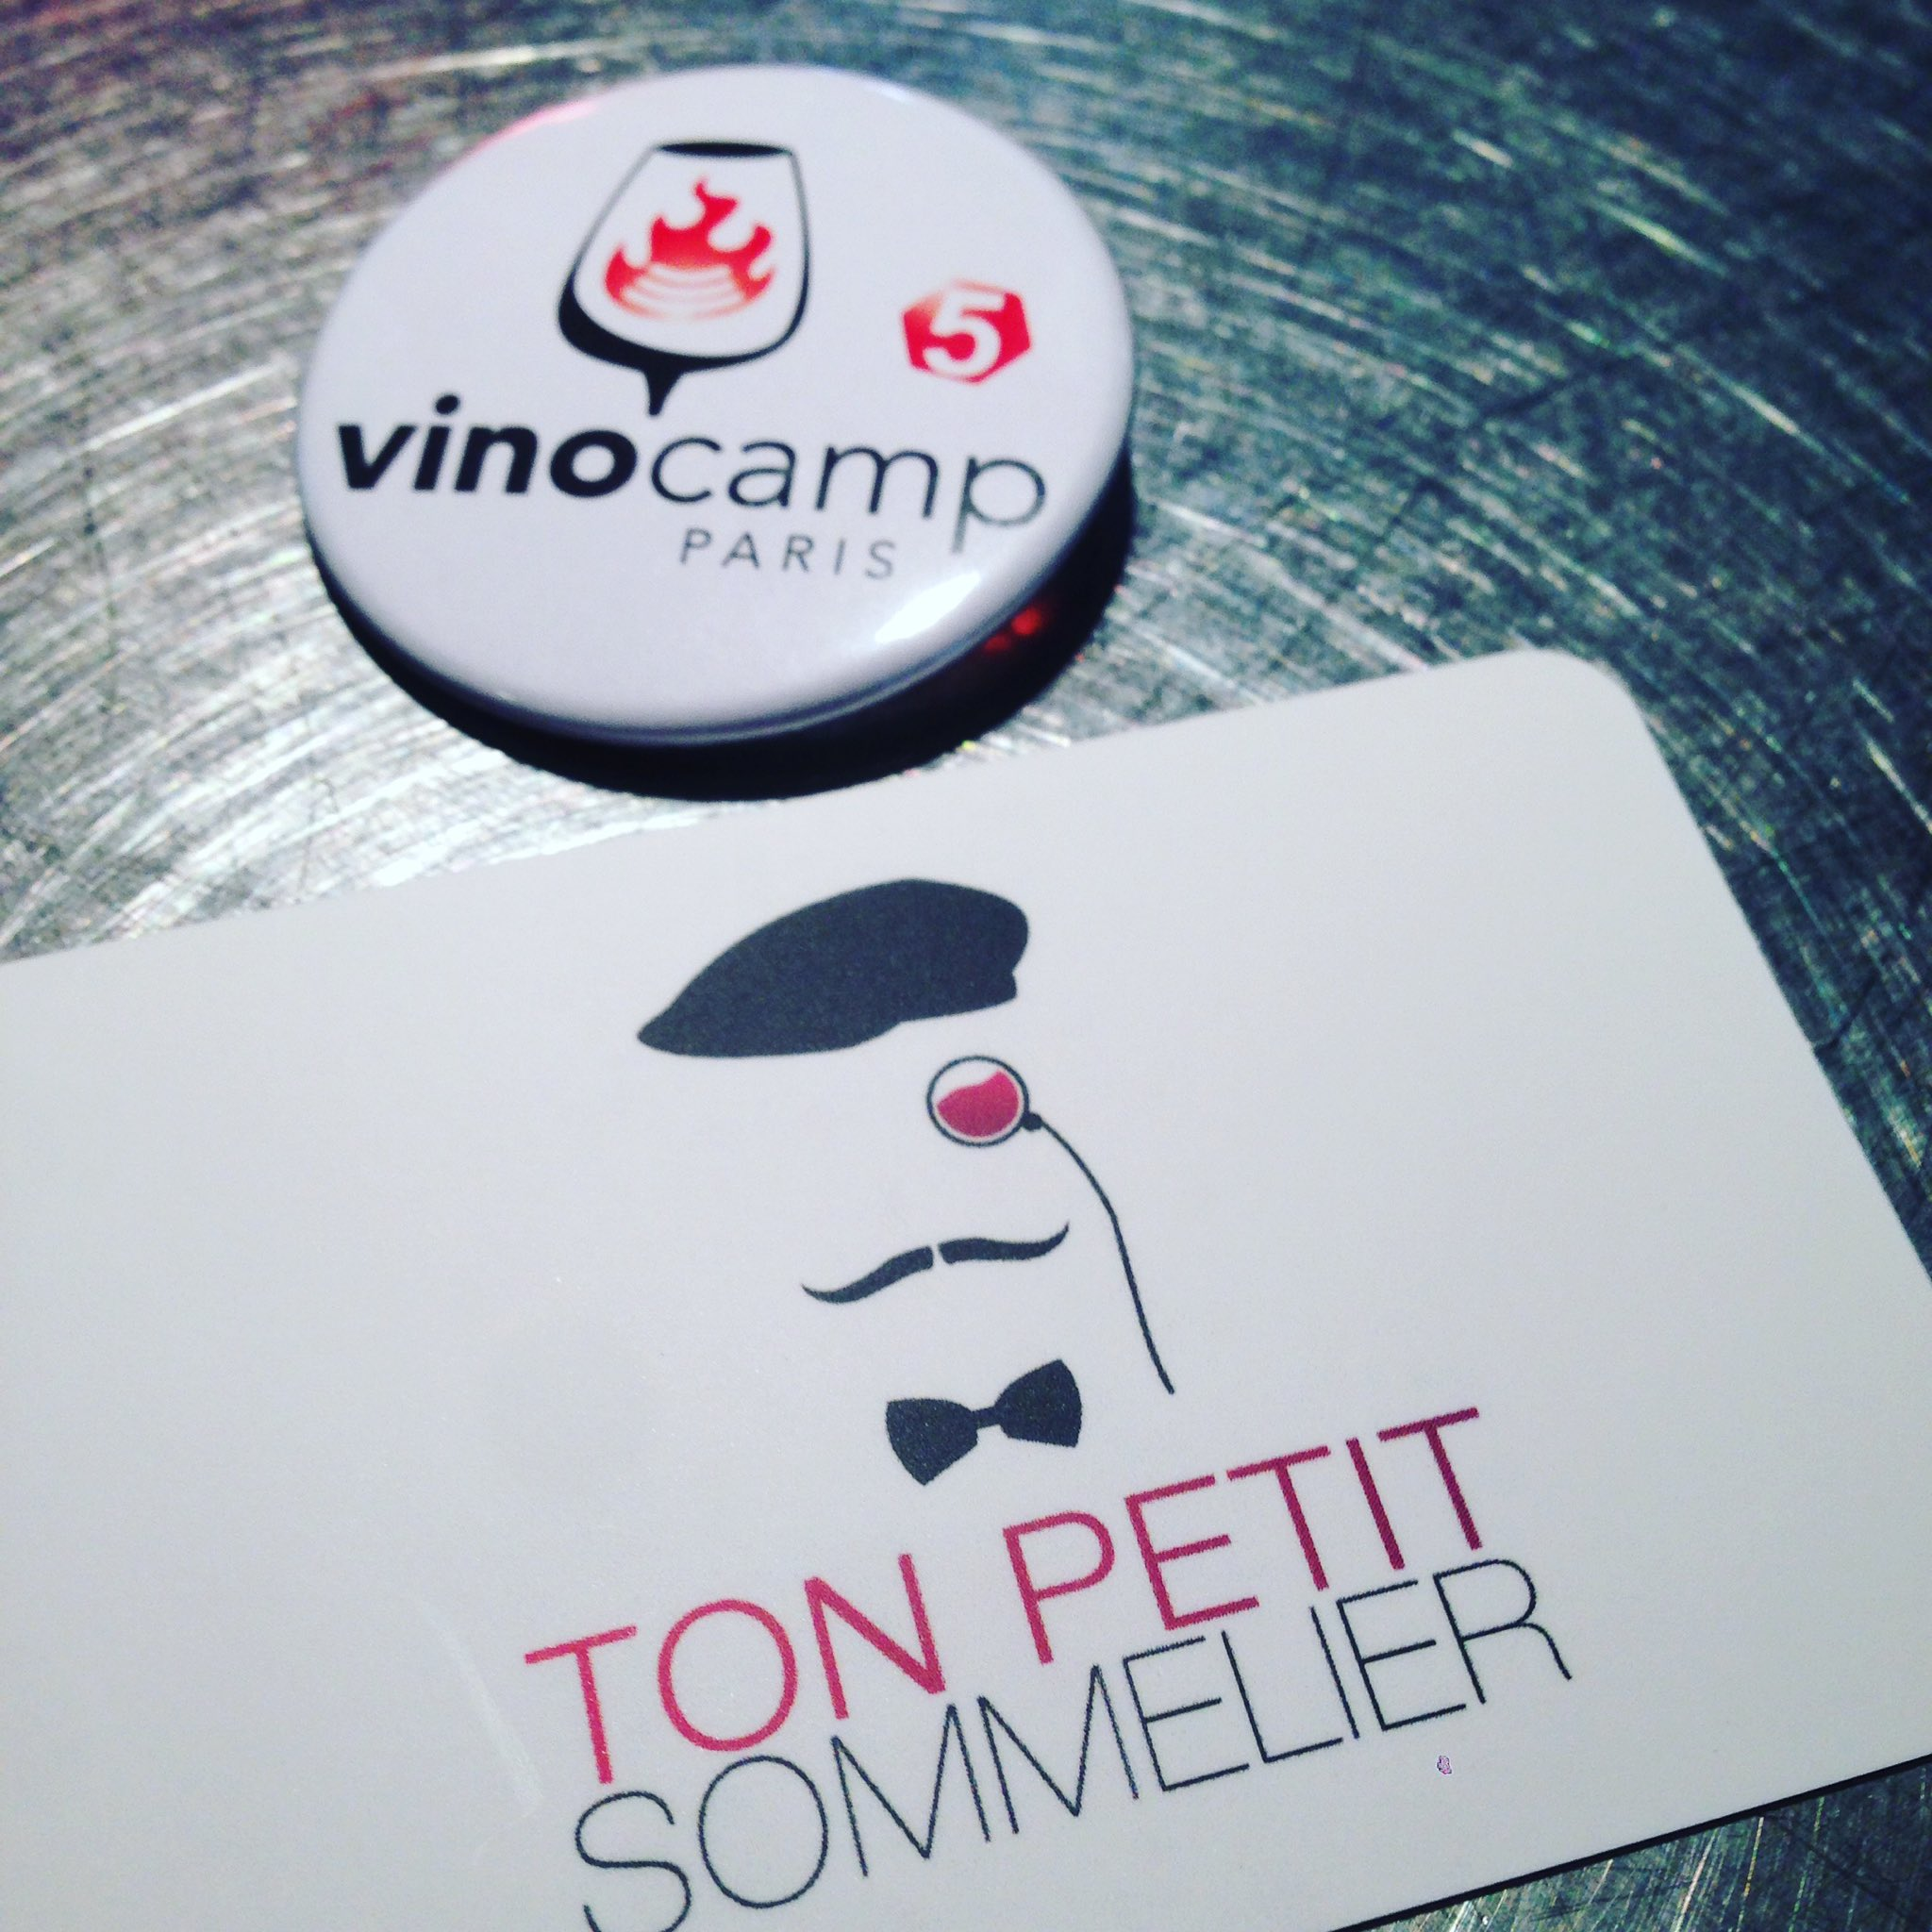 #Vinocamp Paris c'est parti ! 😀🍷 https://t.co/aTvJVup6TA